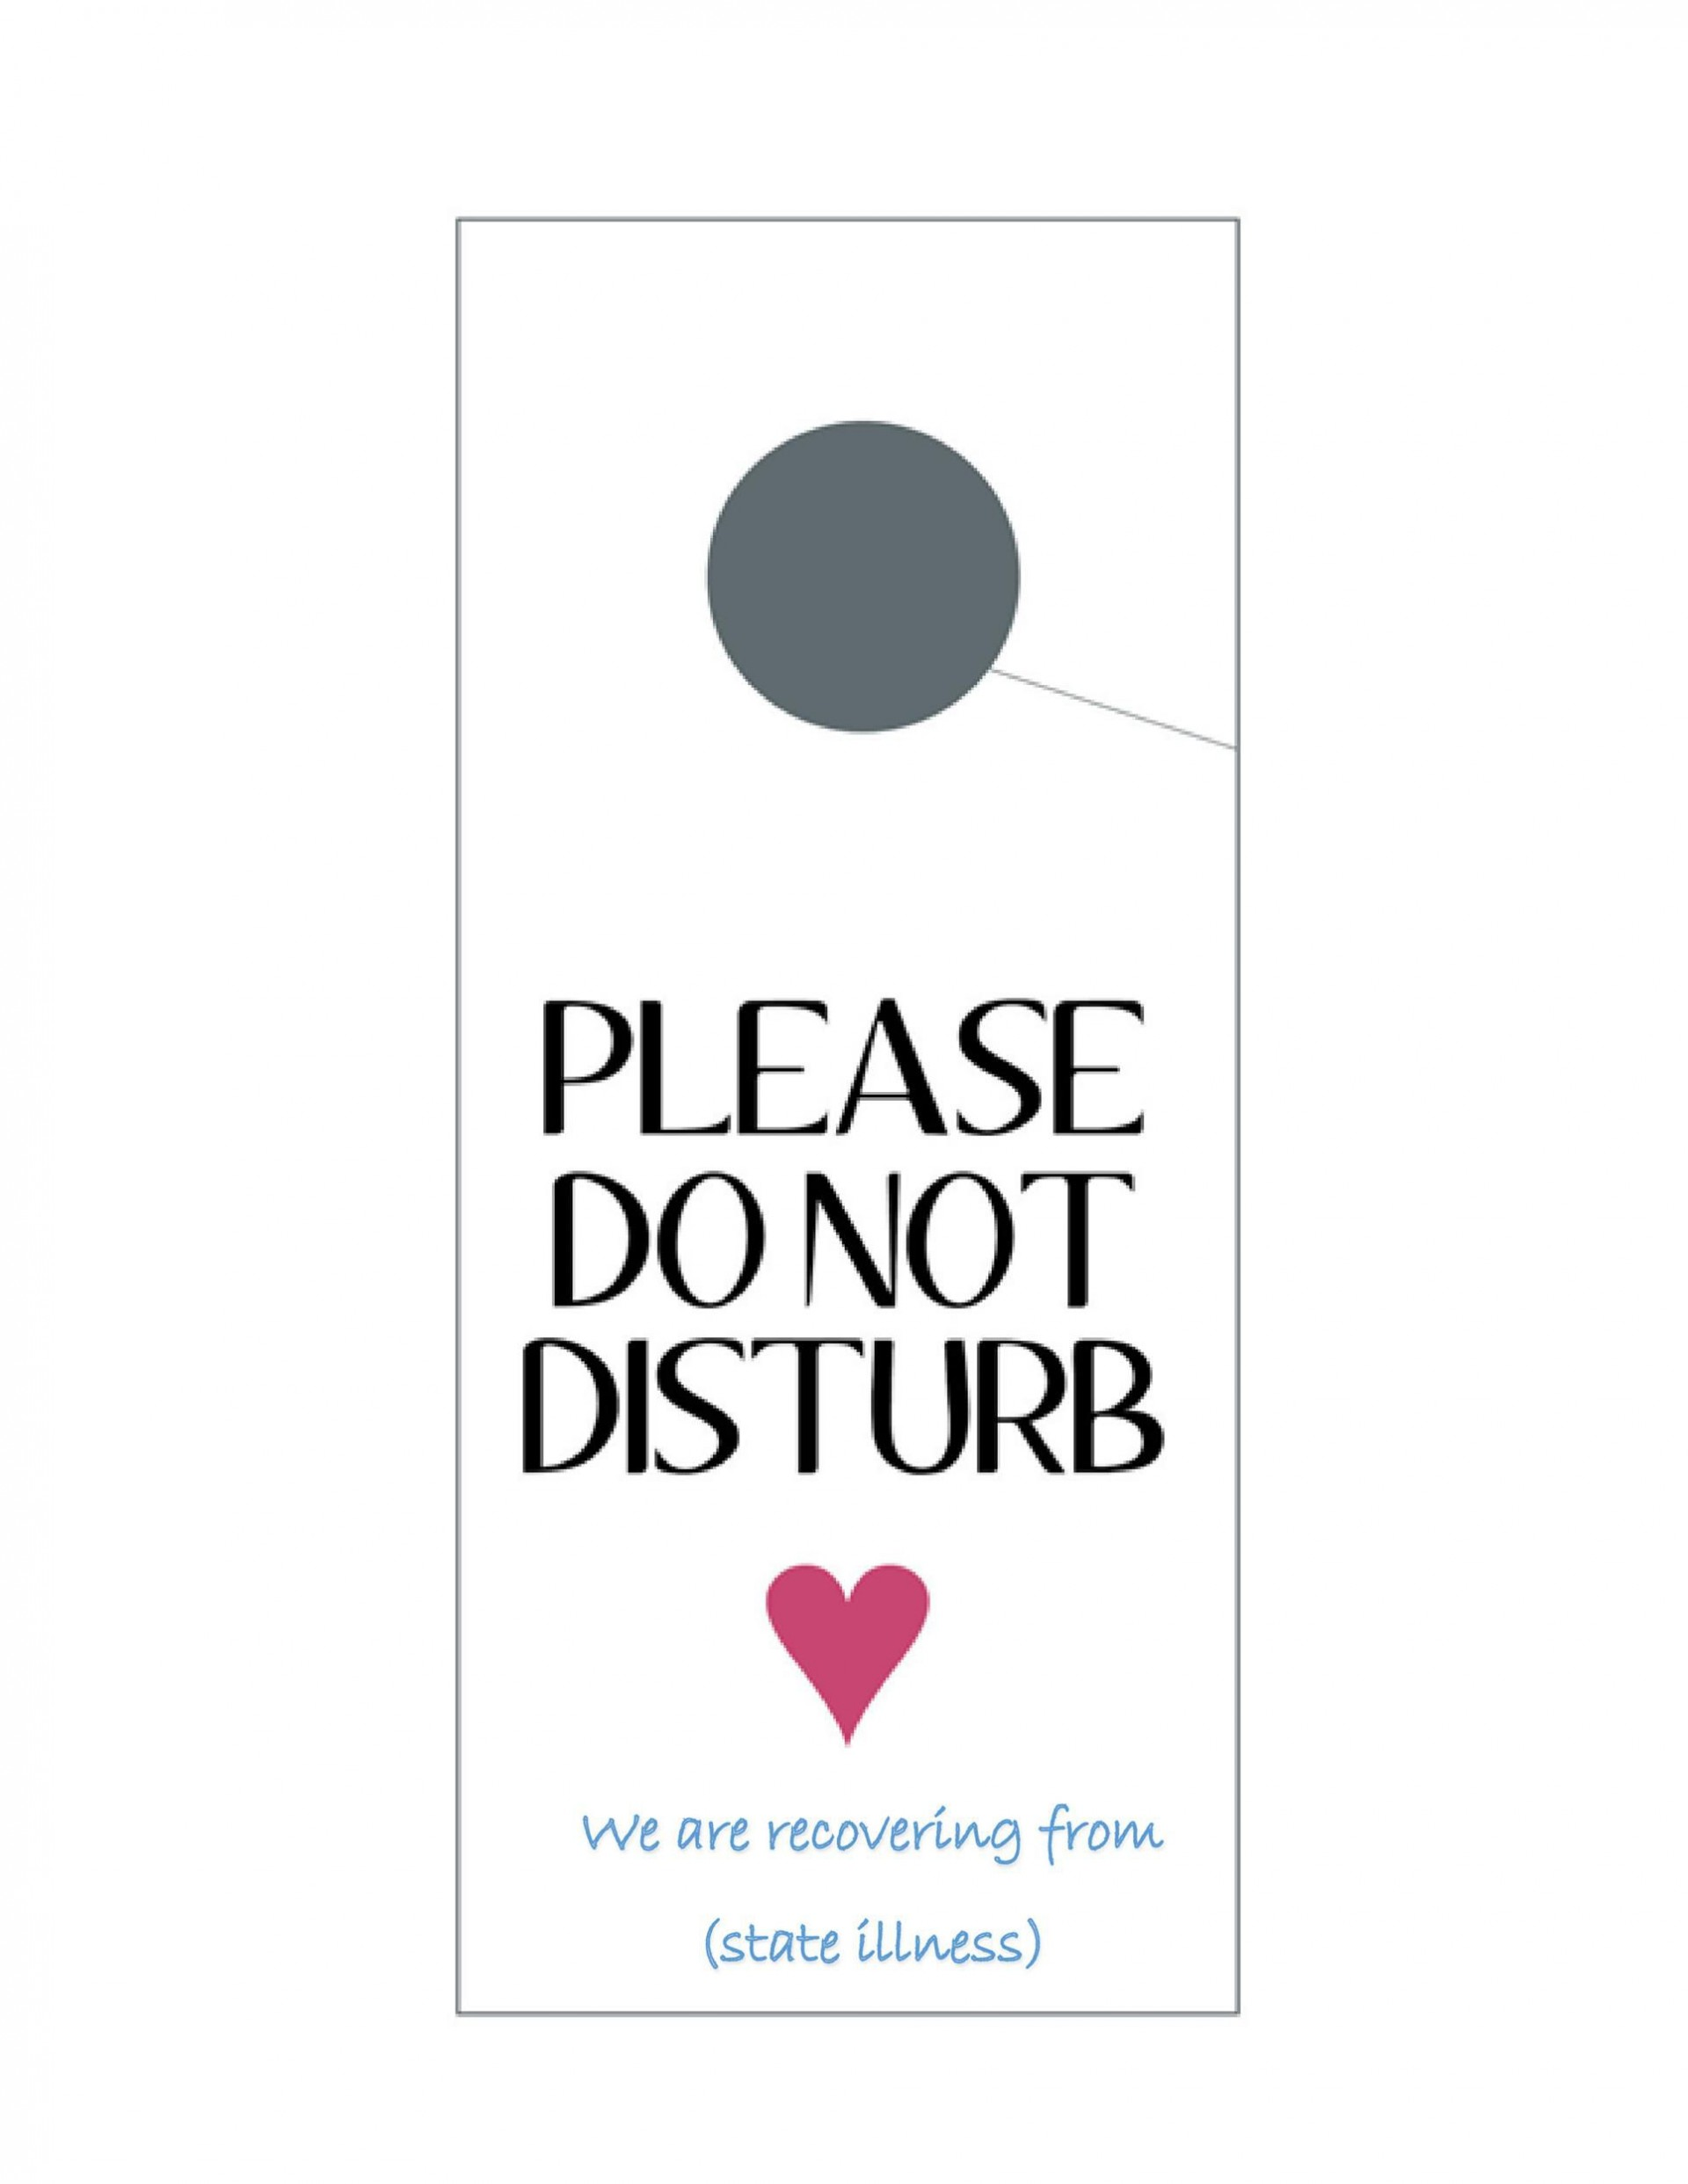 006 Awful Door Hanger Template Word High Definition  Download Free Blank For Microsoft1920